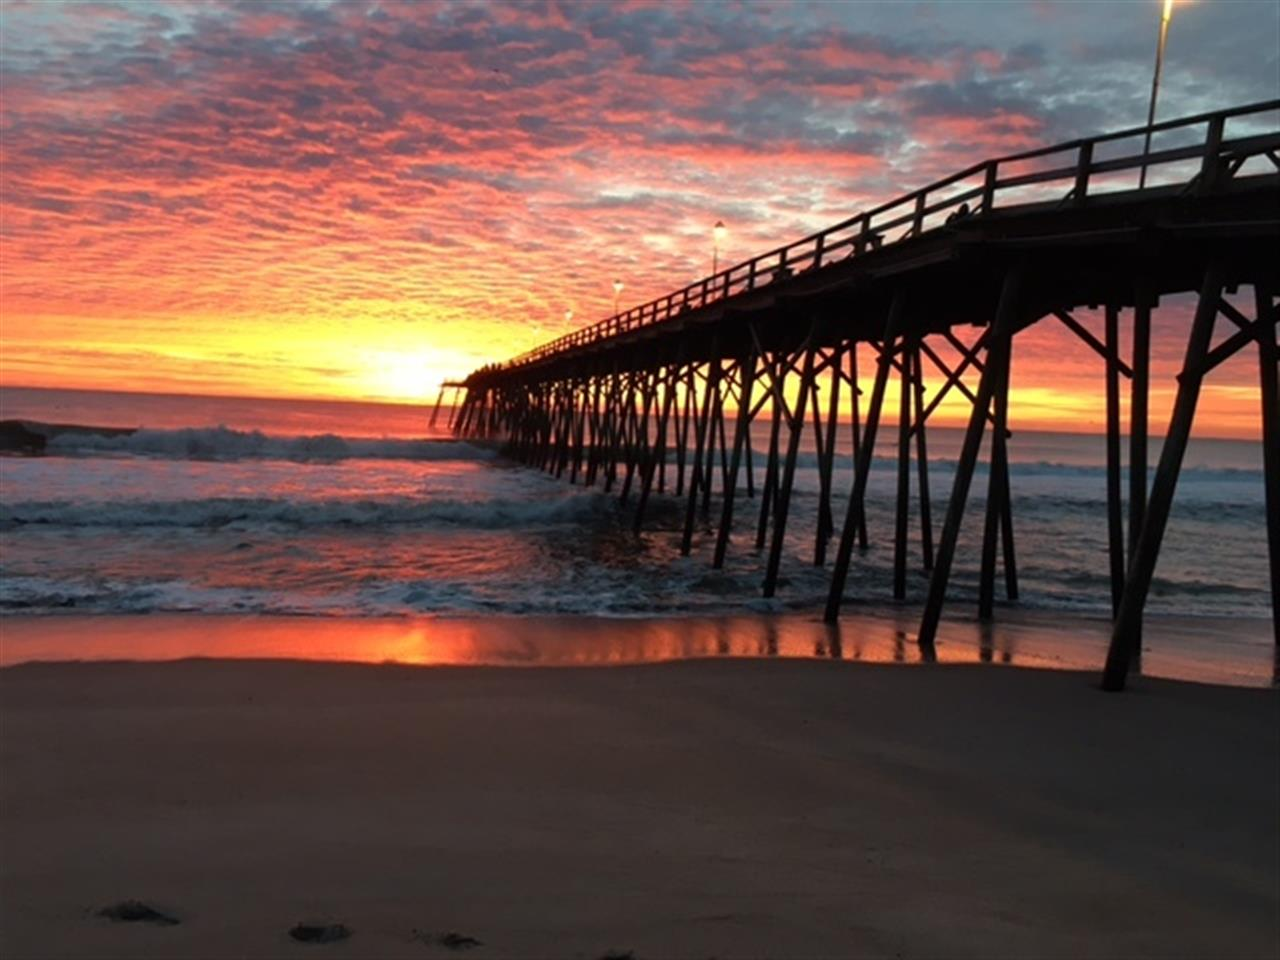 Sun rise at fishing pier in Kure Beach, North Carolina  One of those thank you God mornings